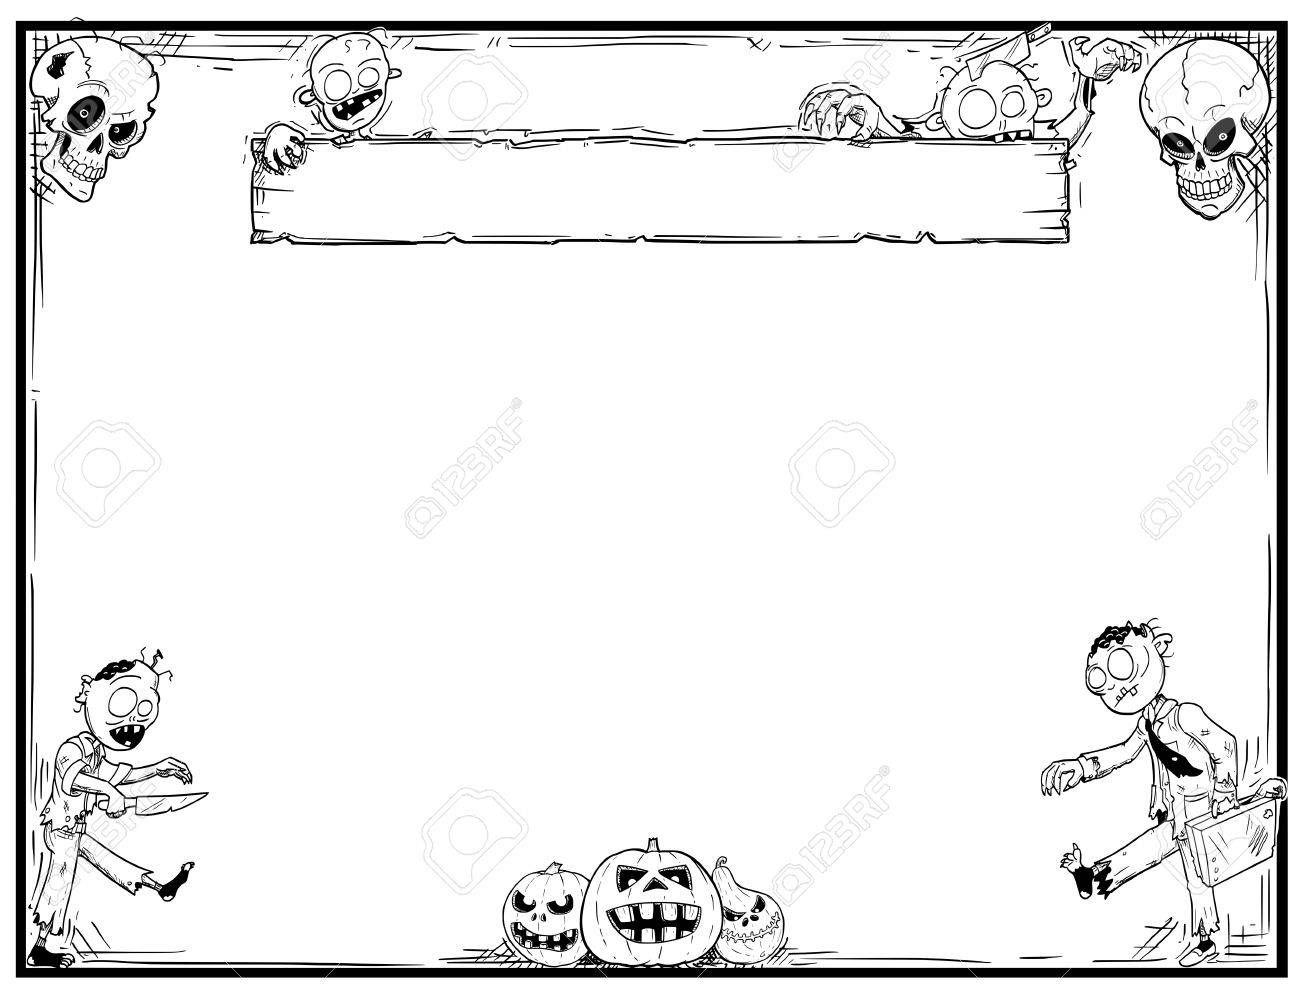 Hand drawing cartoon Halloween frame with cute zombie,skull and pumpkin illustrations. - 85259582